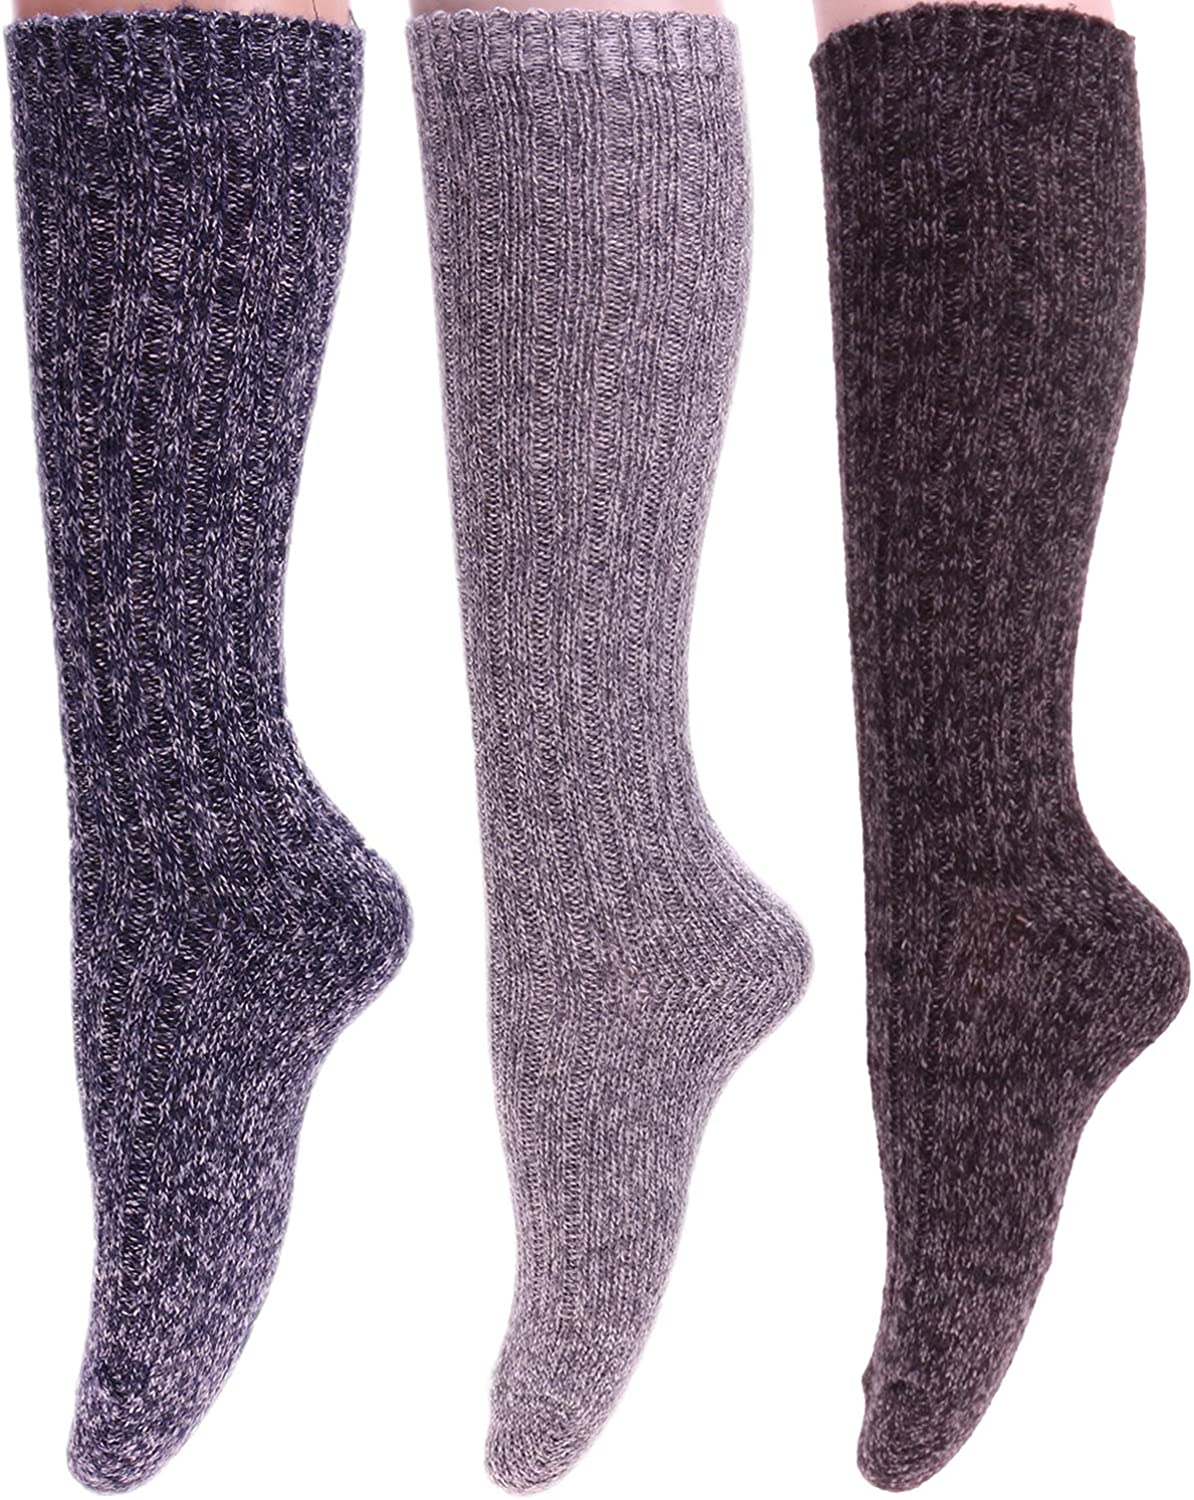 Size Mixed 1 5 Pairs Women Knit Cotton Crew Socks Fashion Slouch Casual Socks